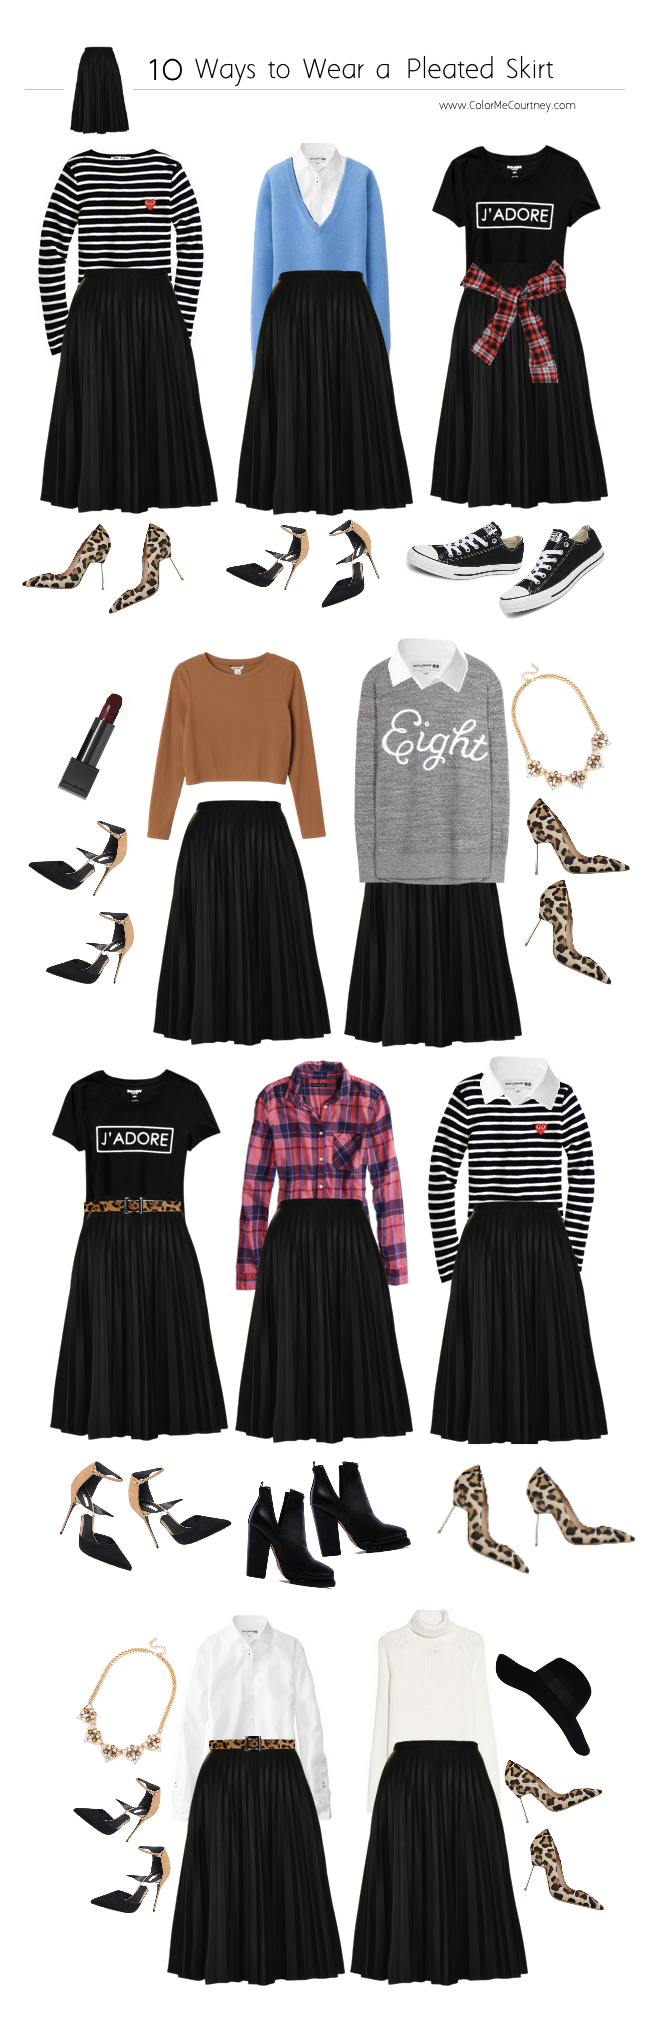 86f4ddcafee 10 ways to wear a pleated skirt Black Pleated Skirt Outfit